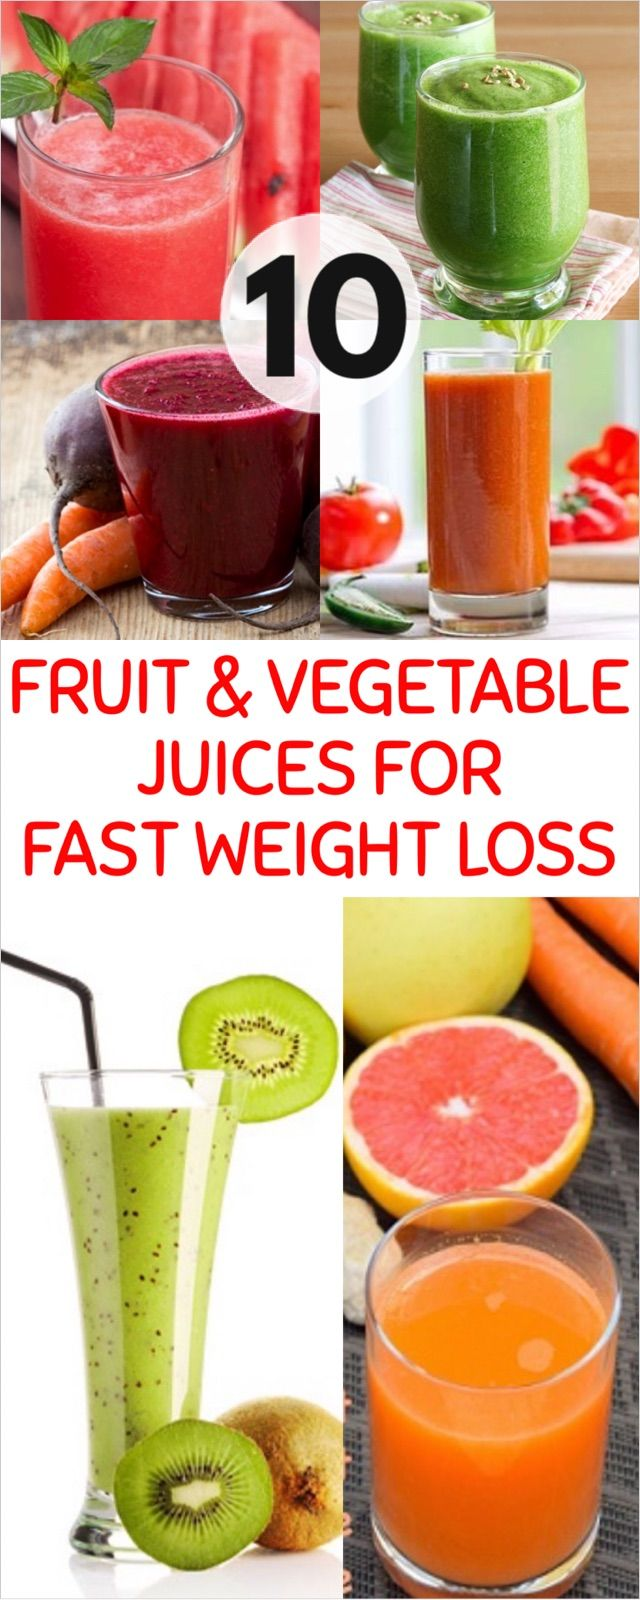 10 Effective Fruit and Vegetable Juices for Fast Weight Loss